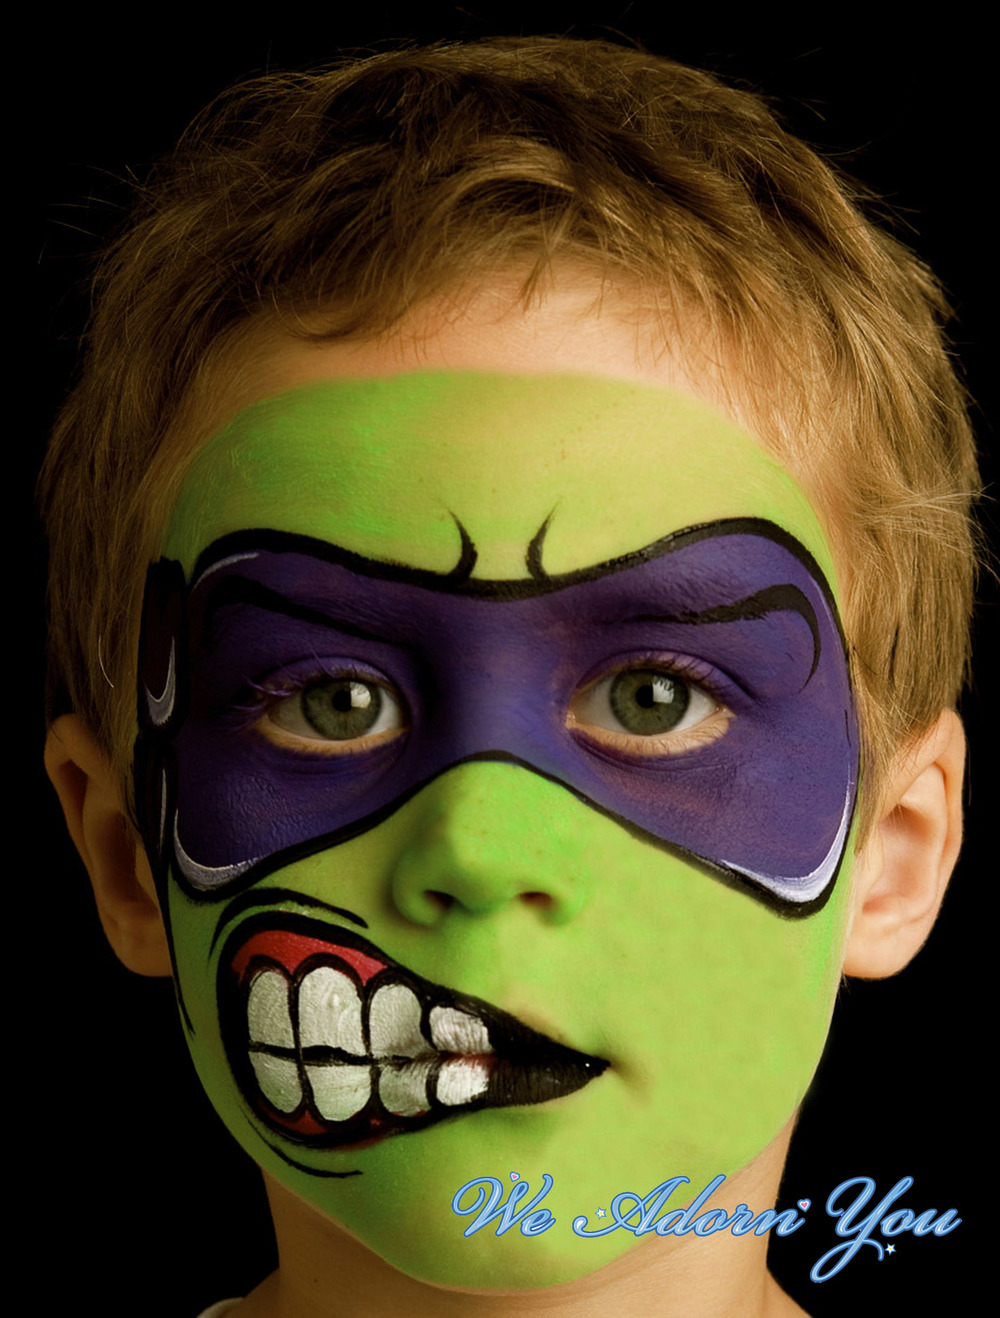 Face Painting Tenage Mutant Ninja Turtle- We Adorn You.jpg